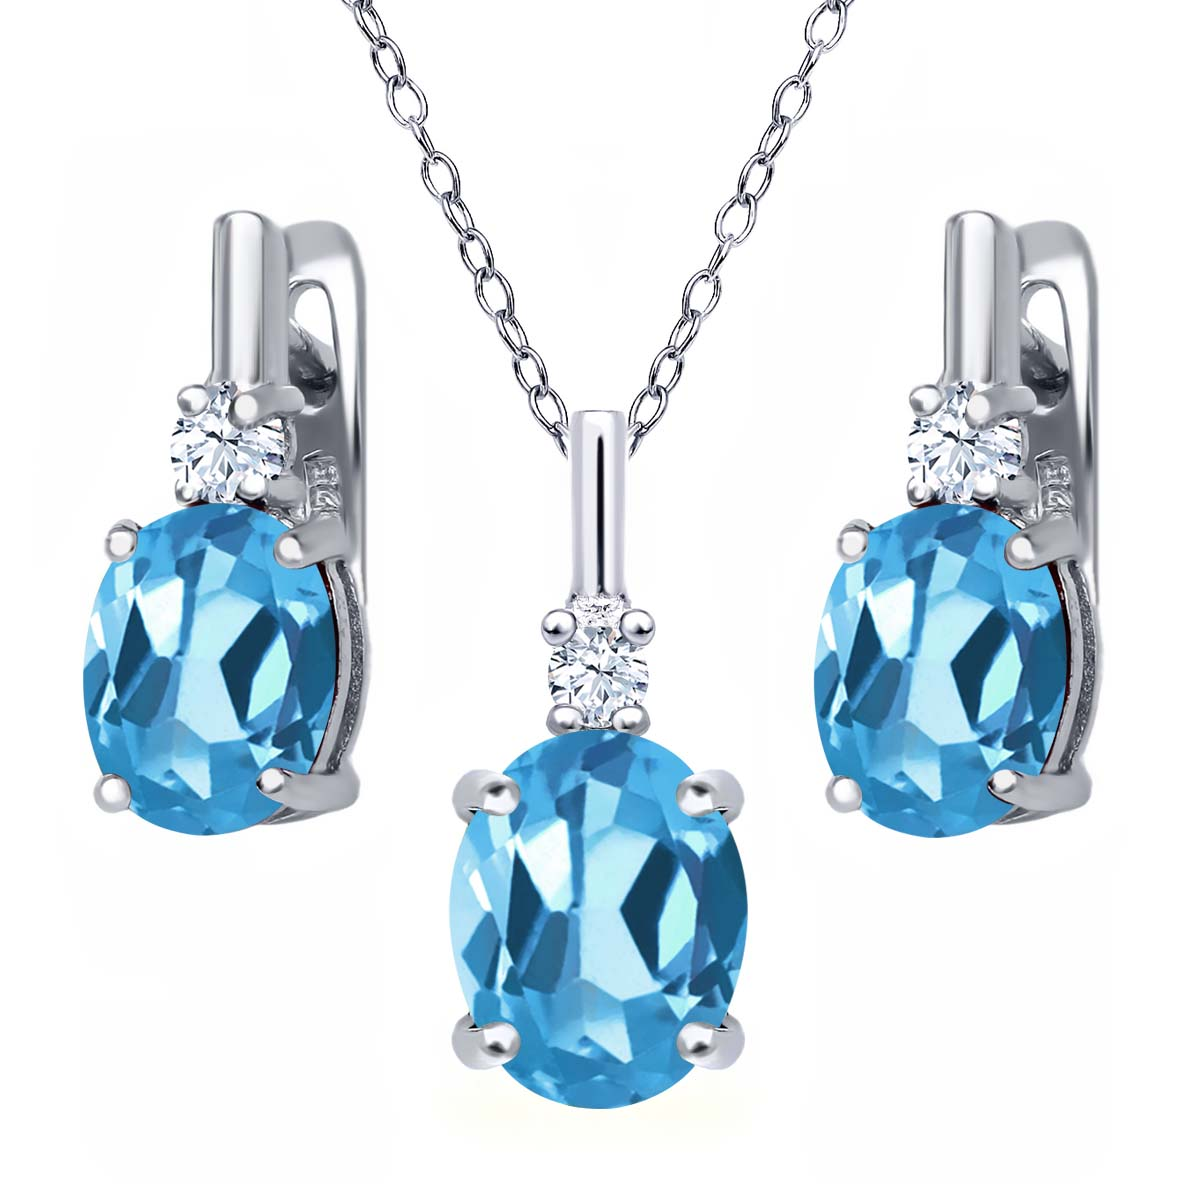 6.65 Ct Oval Swiss Blue Topaz 925 Sterling Silver Pendant Earrings Set by